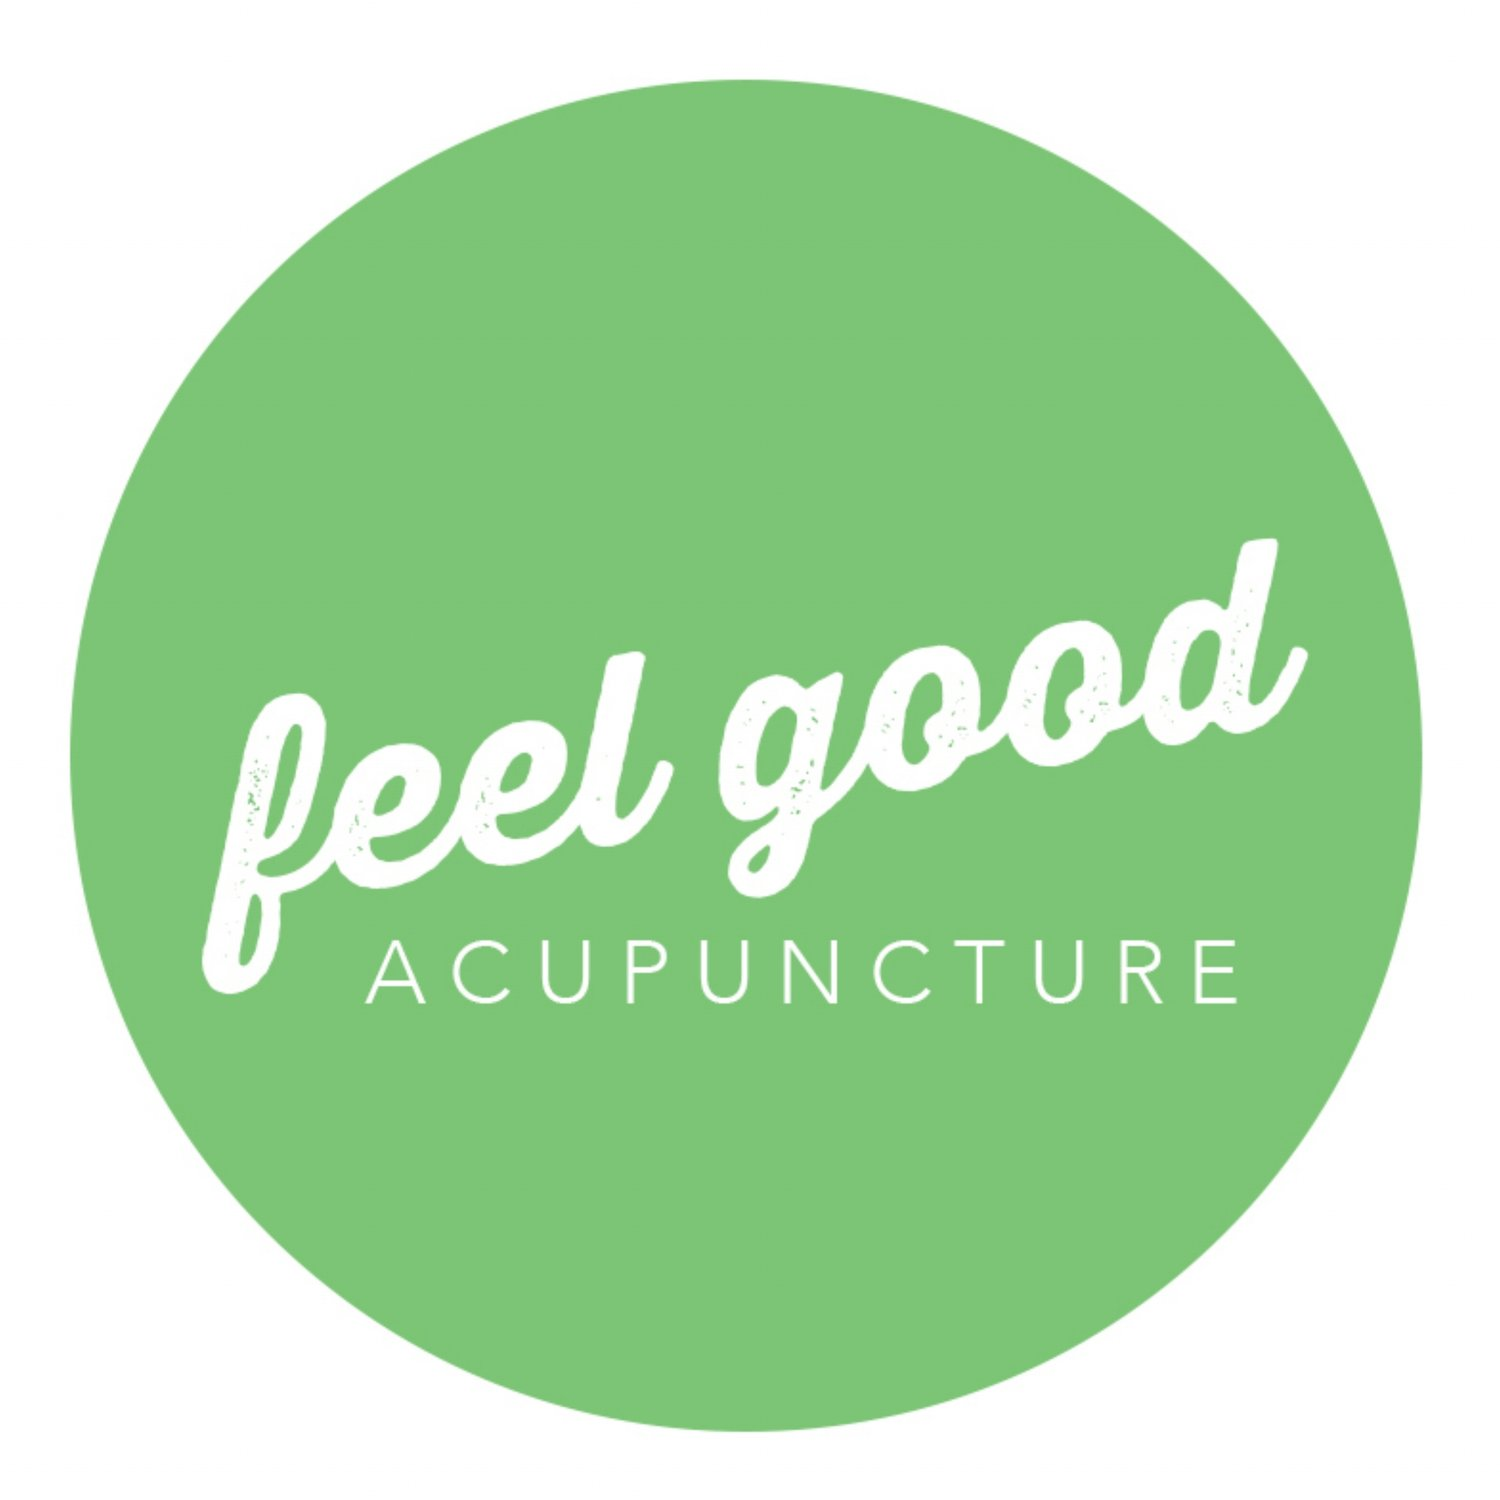 Feel Good Acupuncture